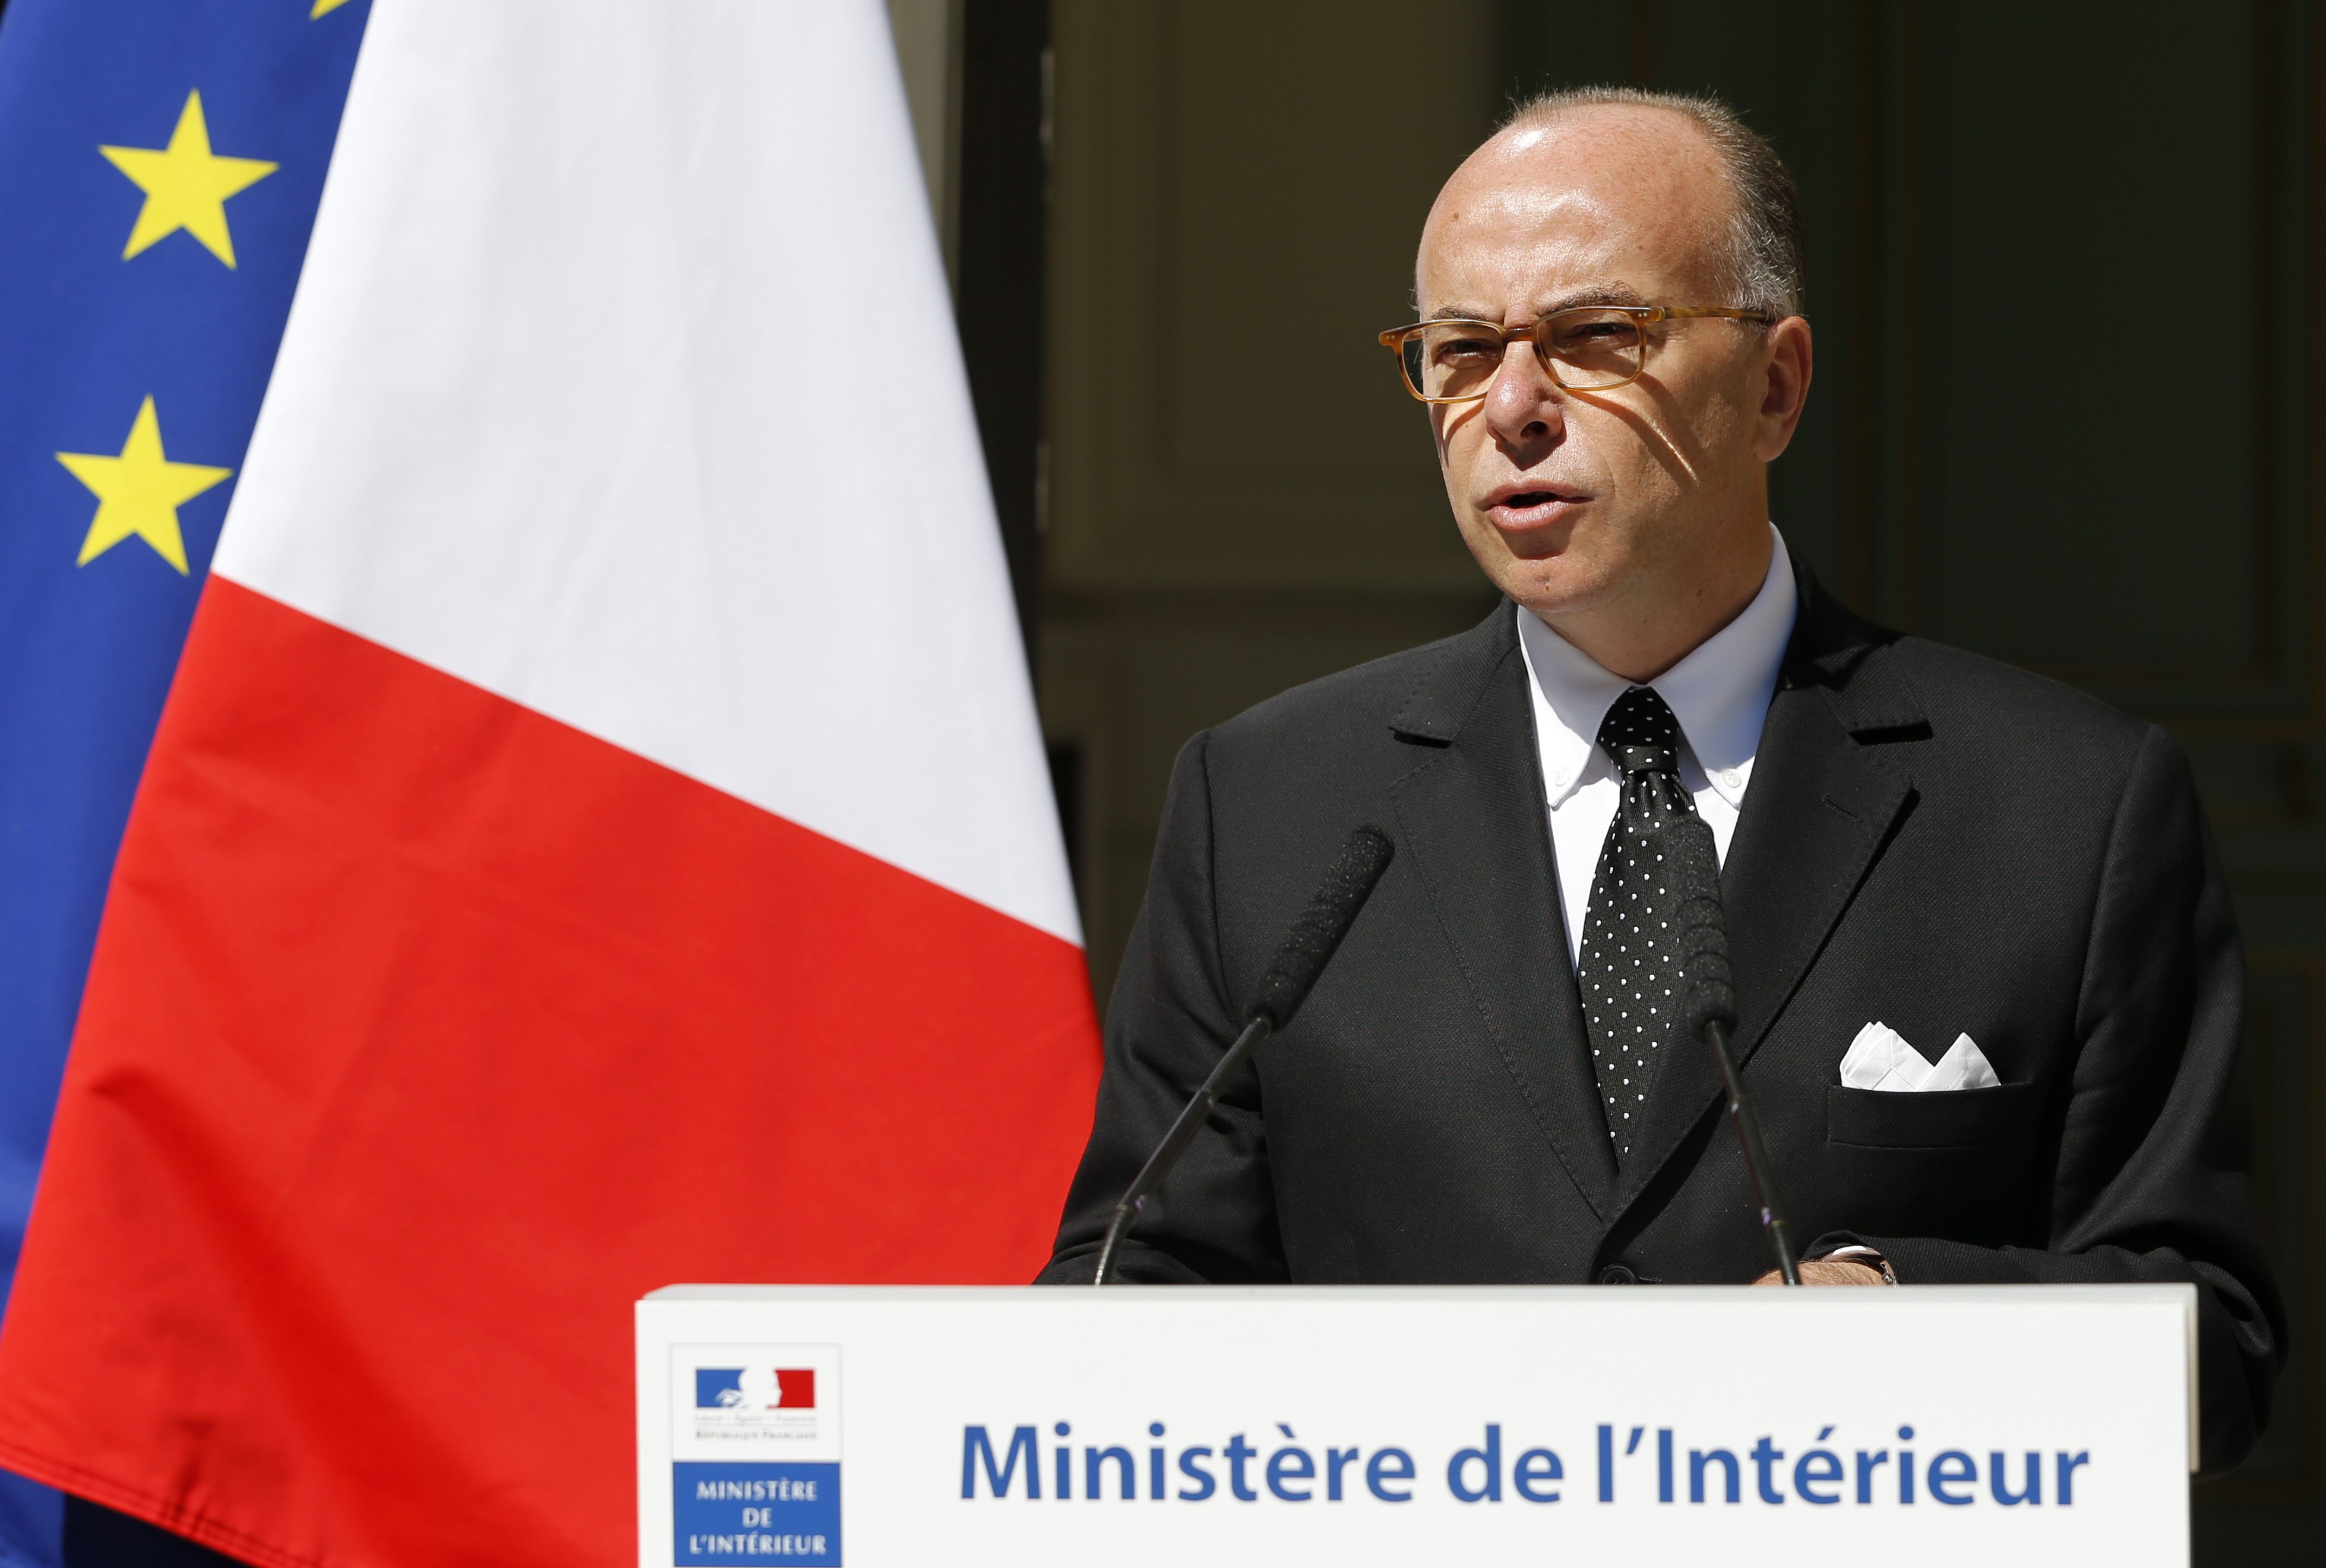 French Interior Minister Bernard Cazeneuve attends a news conference at the Interior ministry in Paris, France, Aug. 22, 2015.